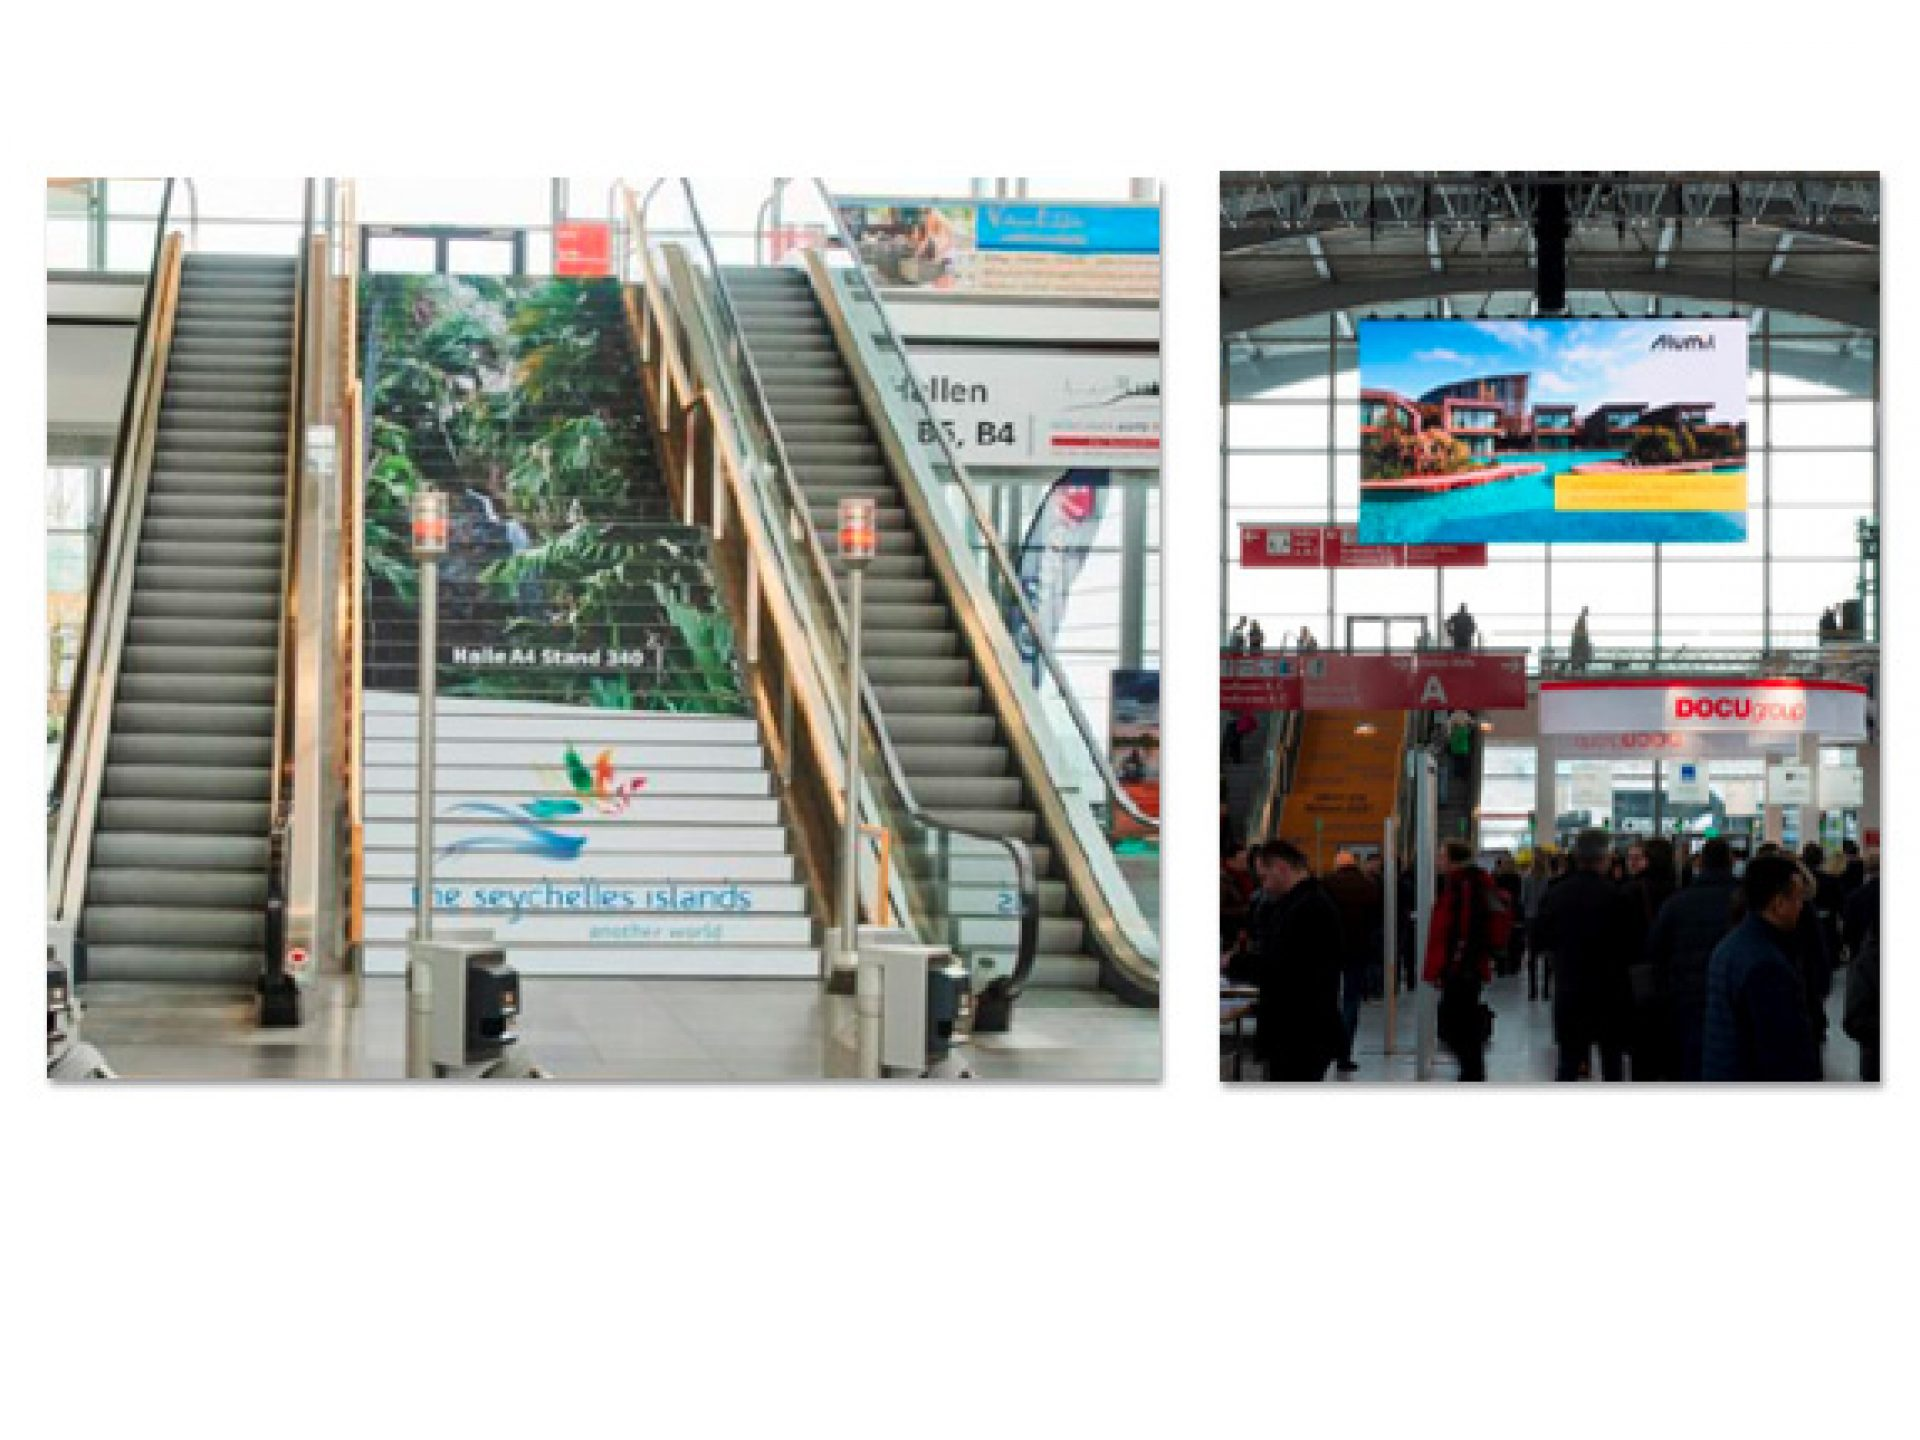 Treppenstufen & LED-Screen